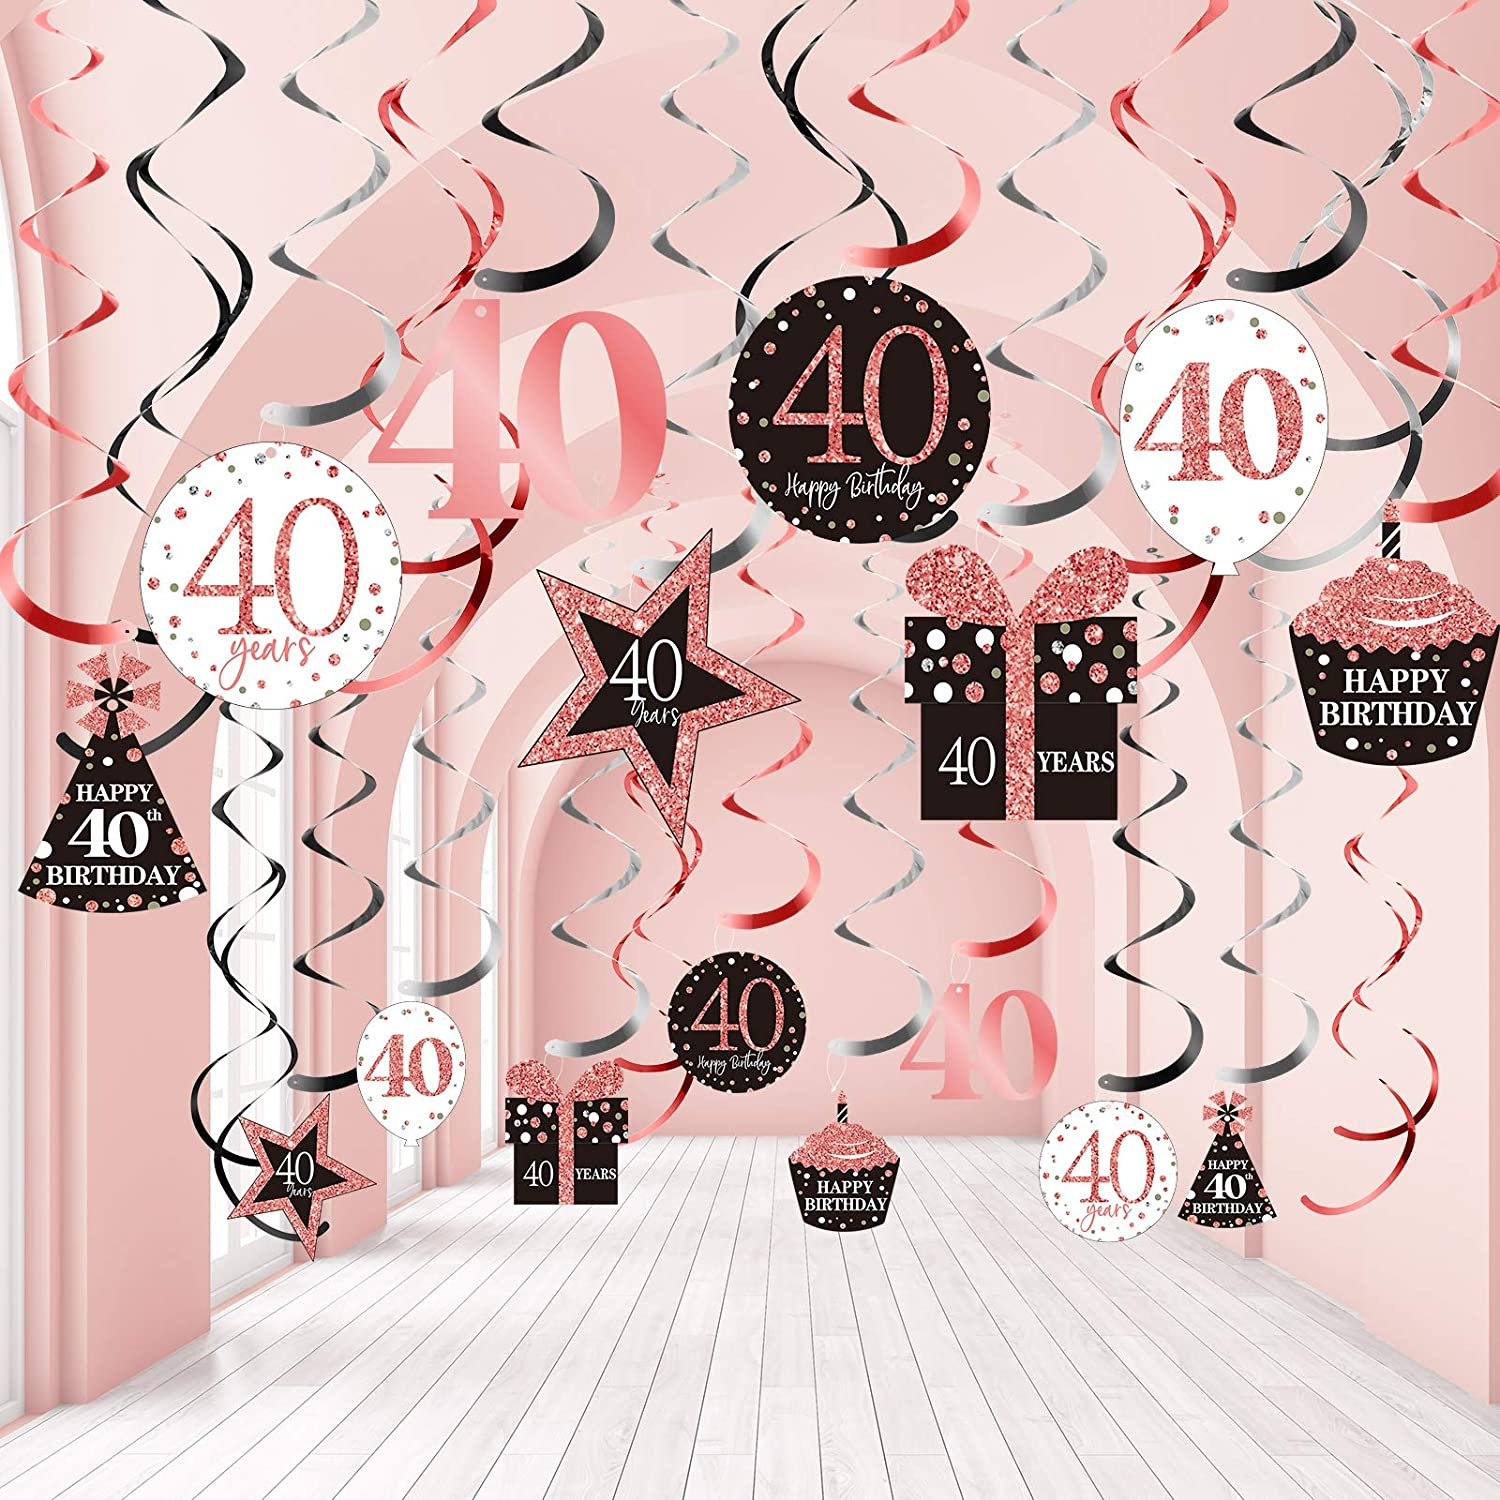 Blulu 40th Birthday Party Decorations, 40th Birthday Party Rose Gold Hanging Swirls Ceiling Decorations Shiny Foil Swirls for 40th Birthday Decorations 40 Years Old Party Supplies 30 Count